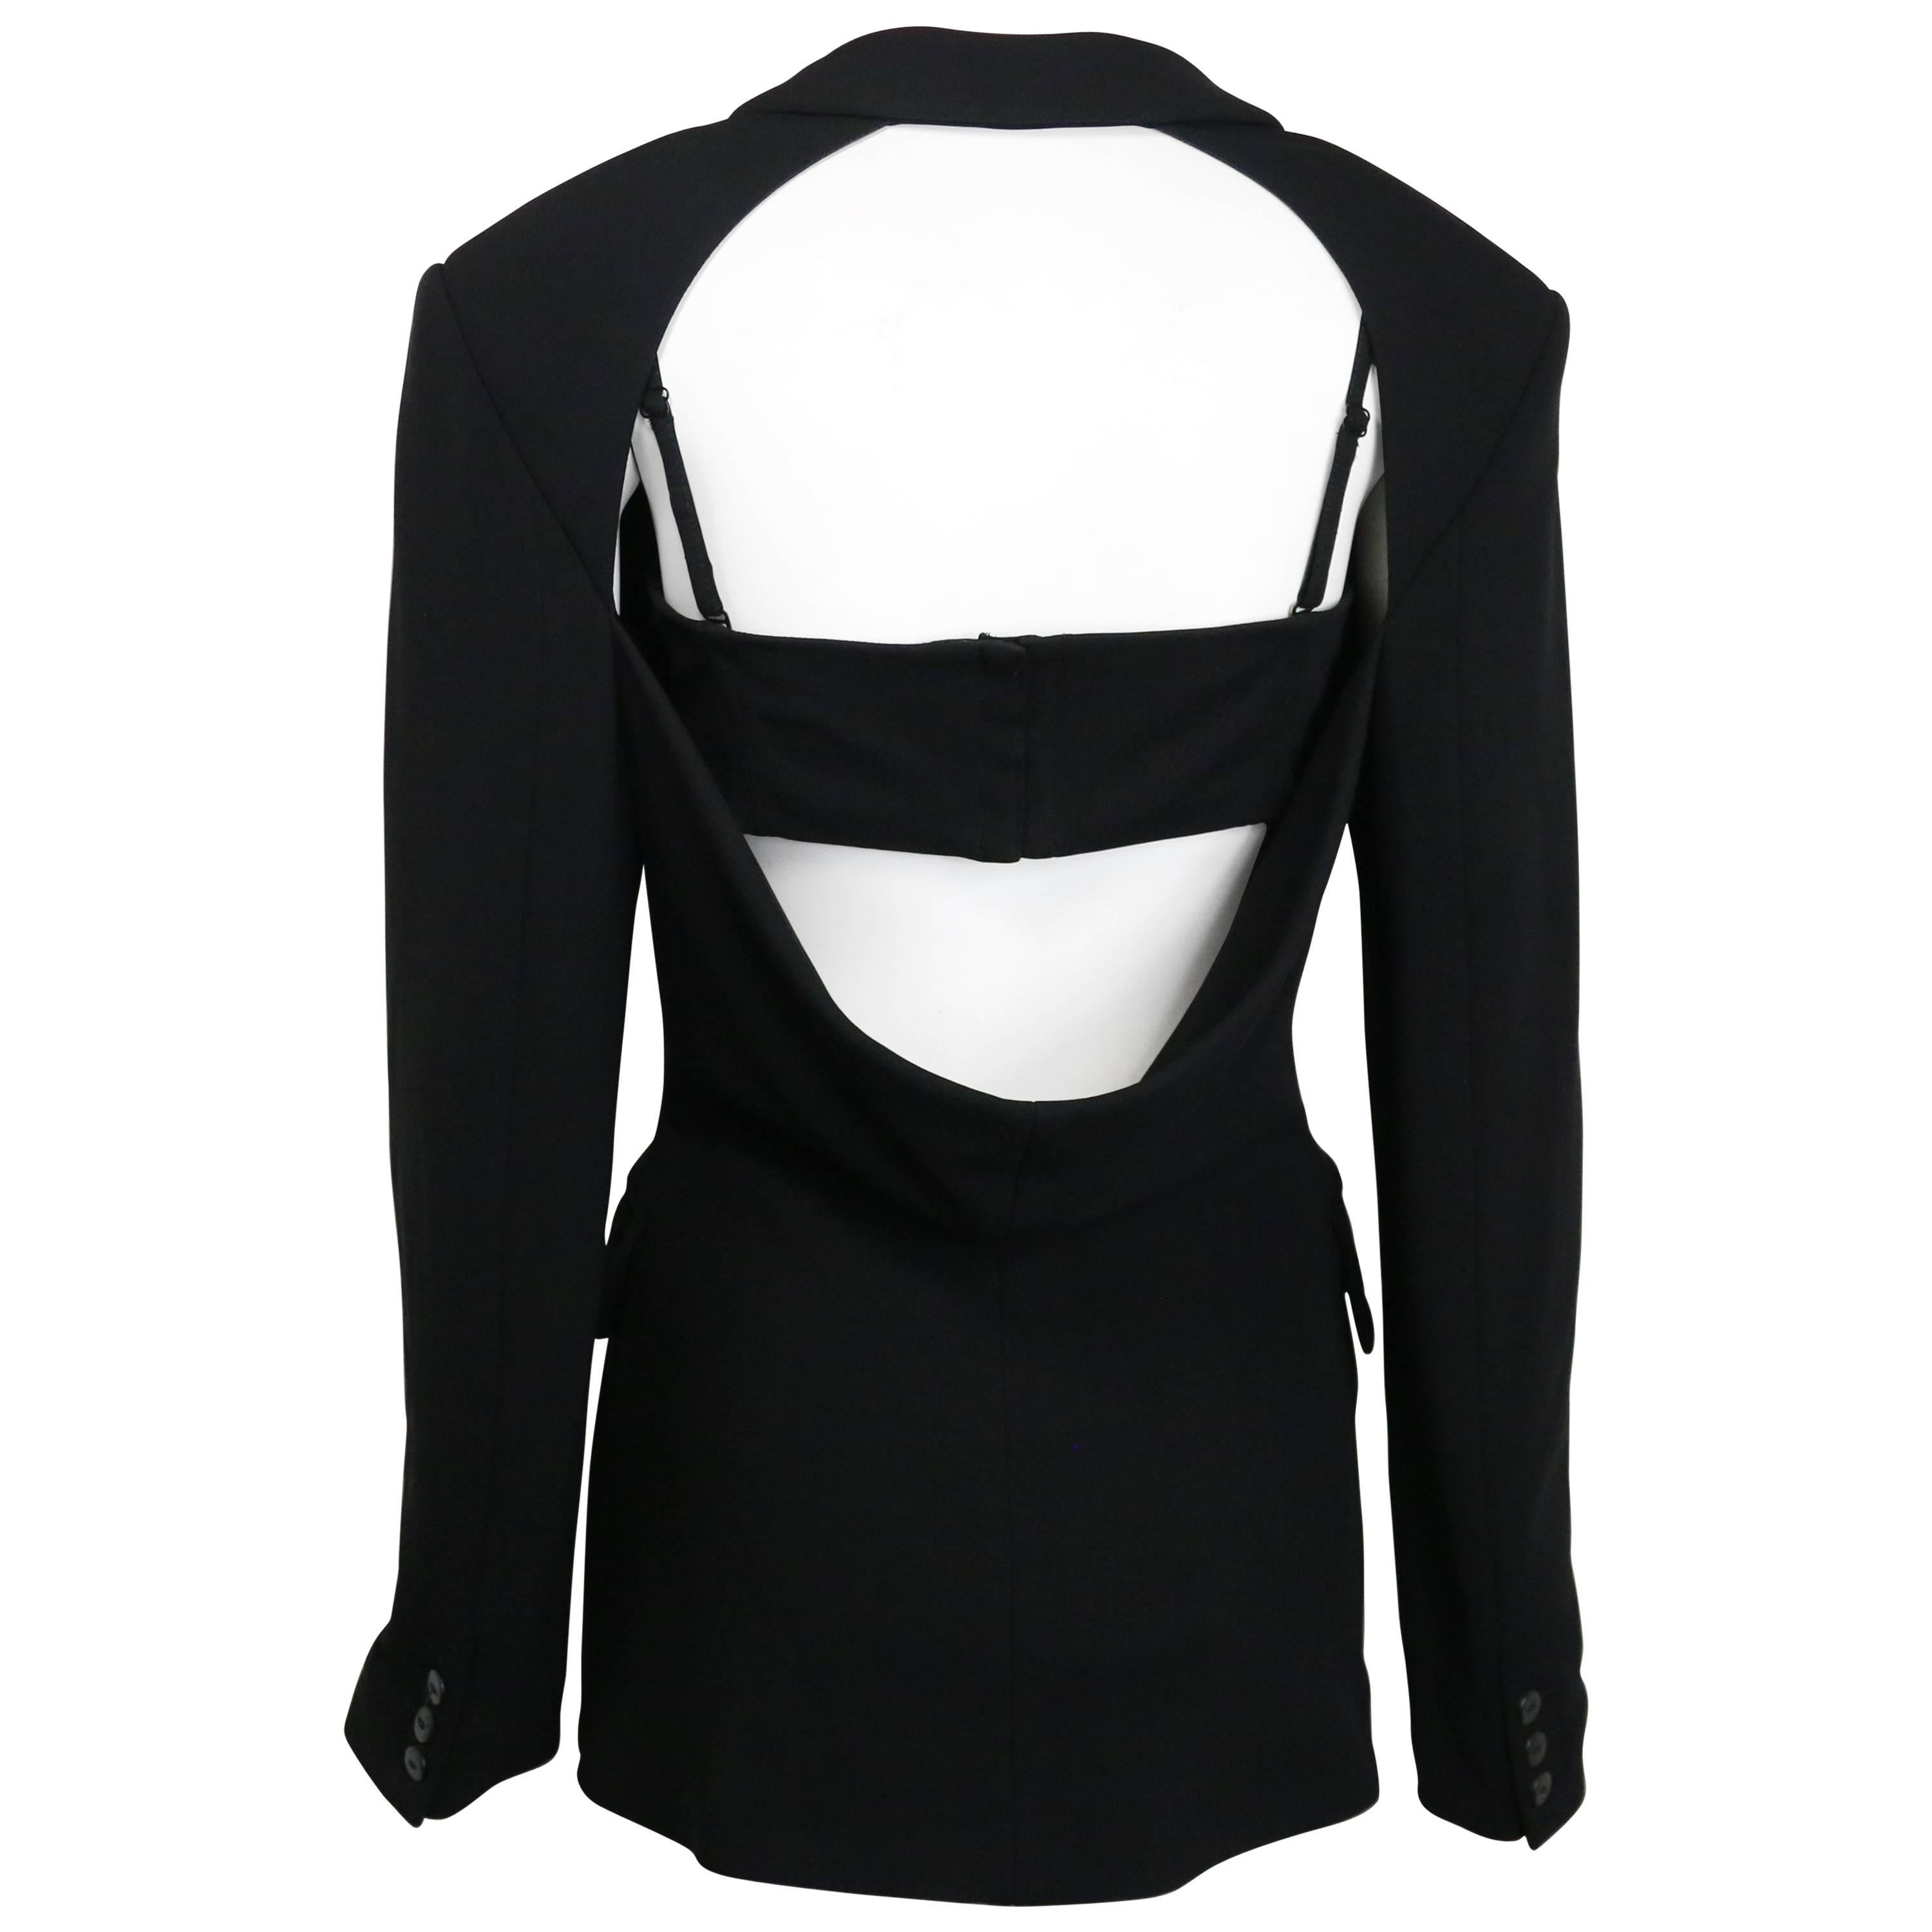 Plein Sud Black Open Back Jacket with Tube Top